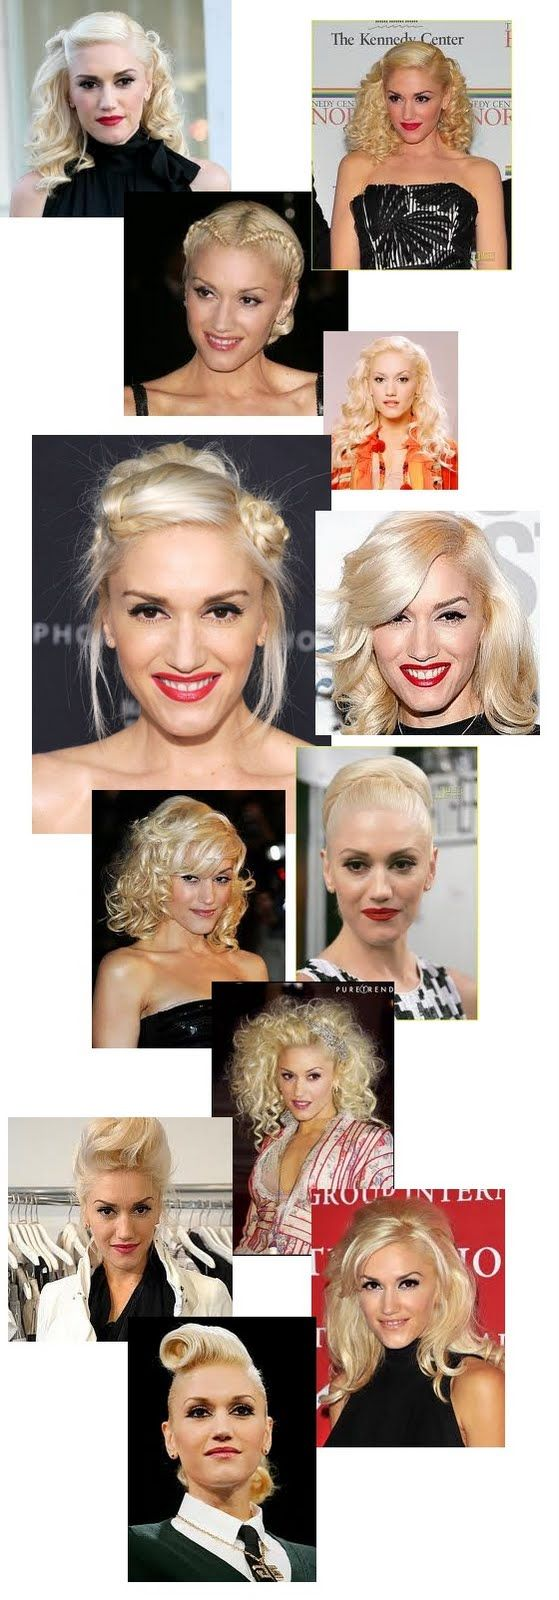 Gwen Stefani: If this is what 45 looks like...I'm in!! I love her style, music and she seems so down to earth and genuinely nice!! Plus, she is married to Gavin....that probably keeps a girl happy!! :)